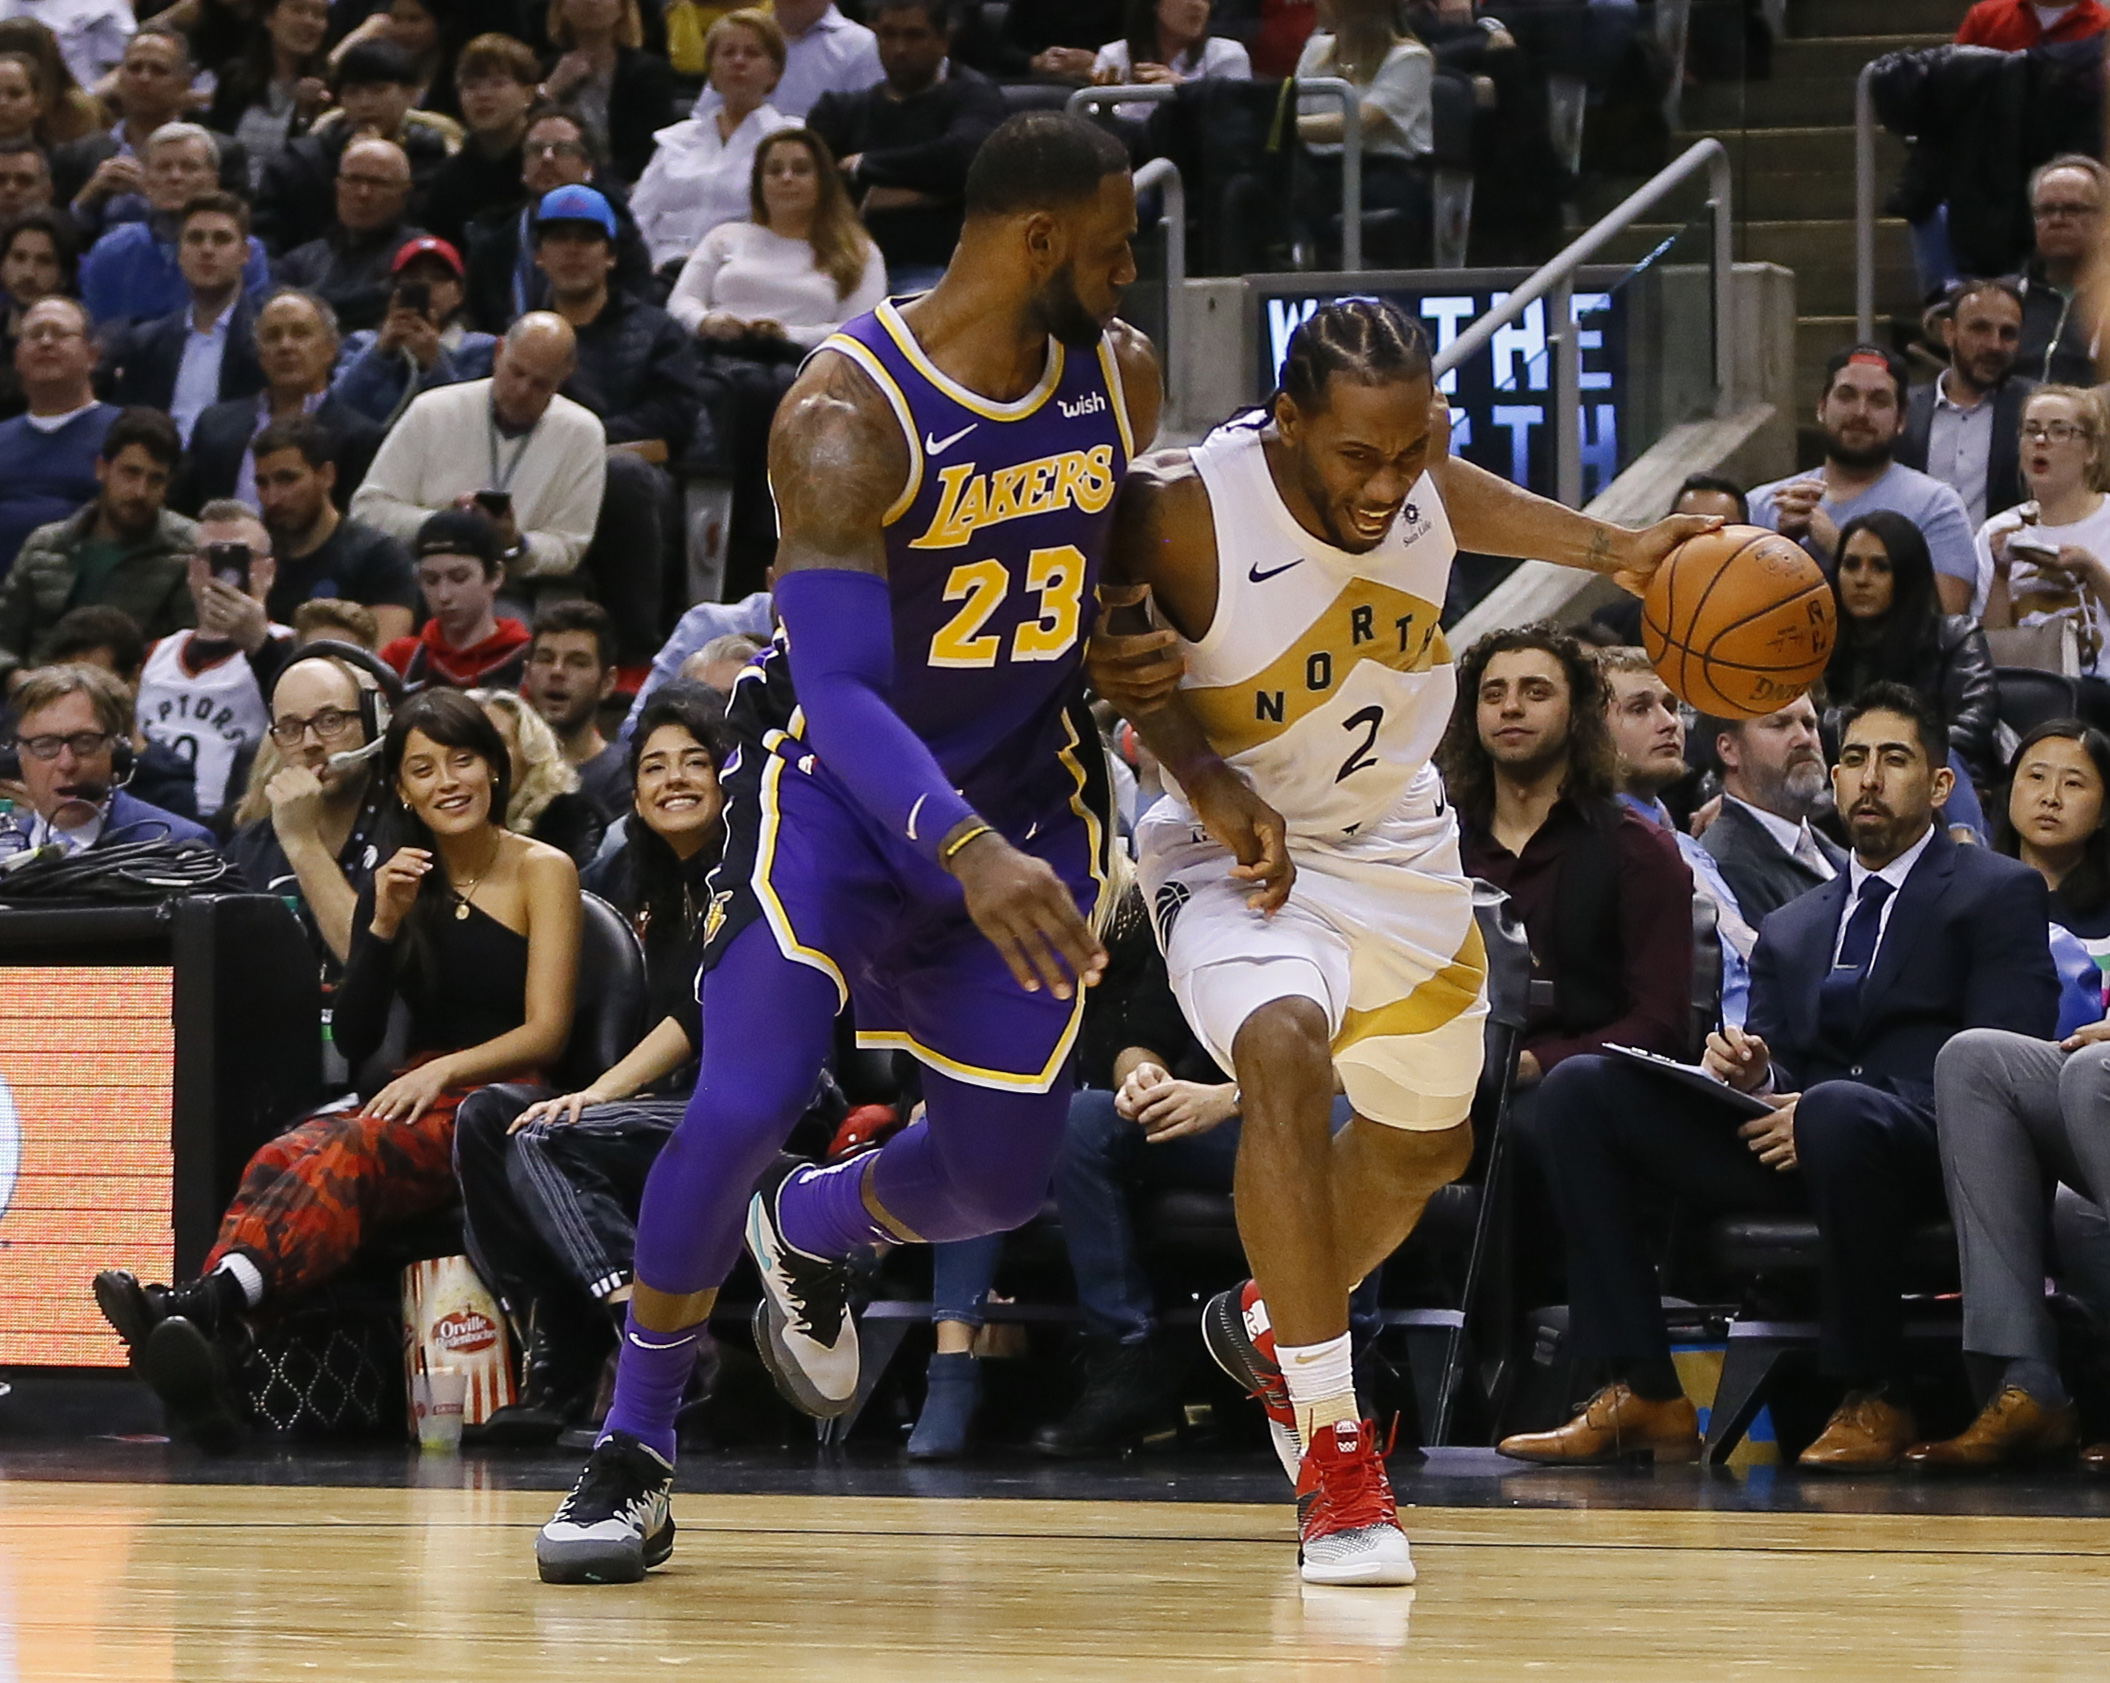 99bbedb702a Mar 14, 2019; Toronto, Ontario, CAN; Toronto Raptors forward Kawhi Leonard  (2) drives to the basket against Los Angeles Lakers forward LeBron James  (23) at ...